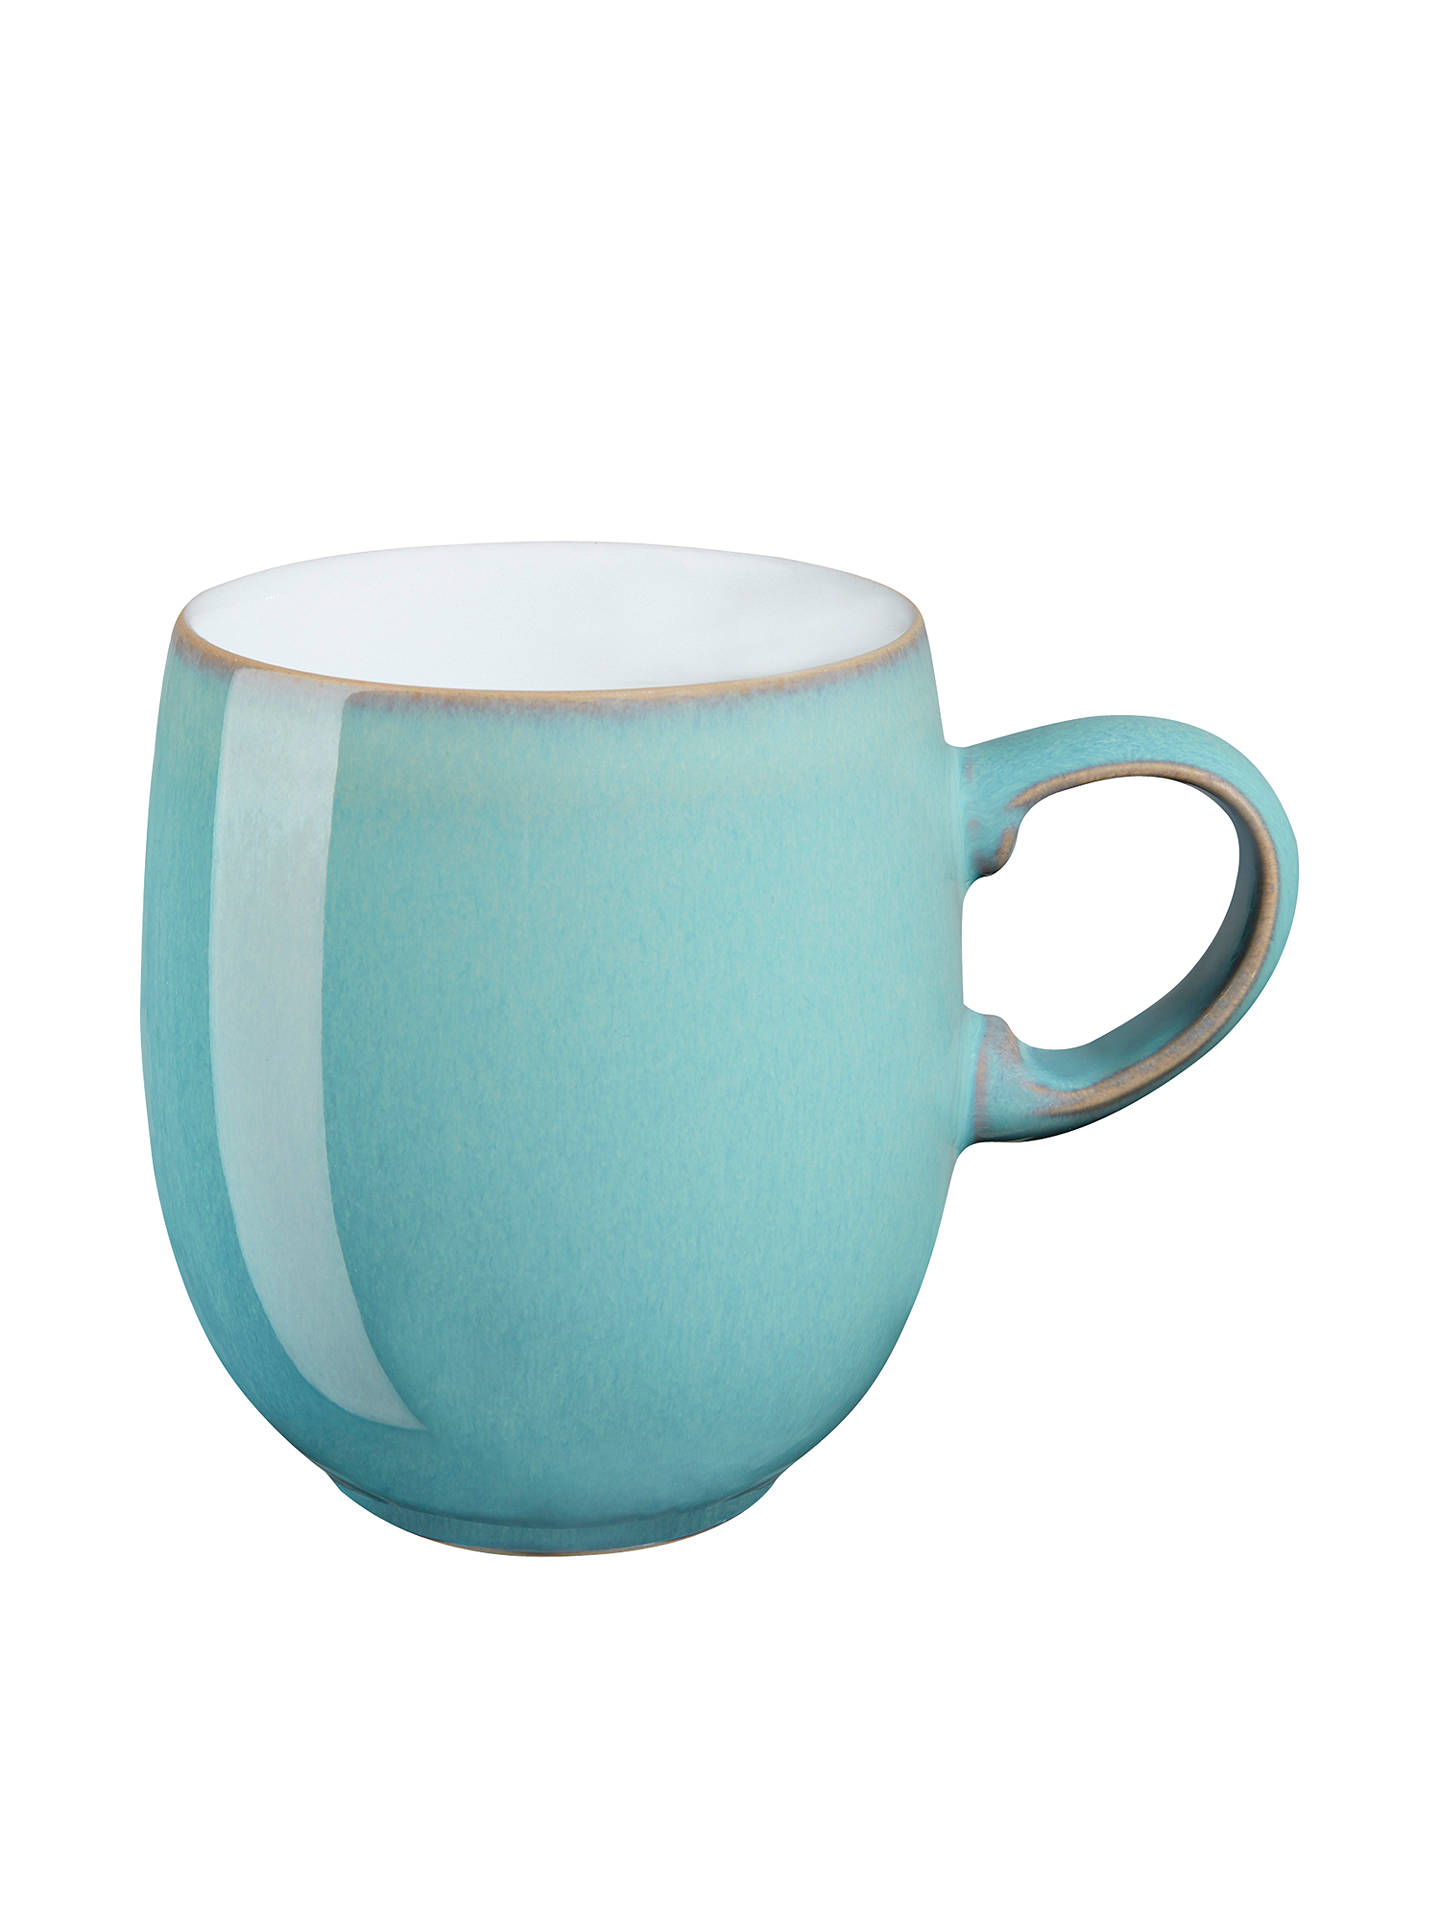 BuyDenby Azure Large Curve Mug, Blue, 400ml Online at johnlewis.com